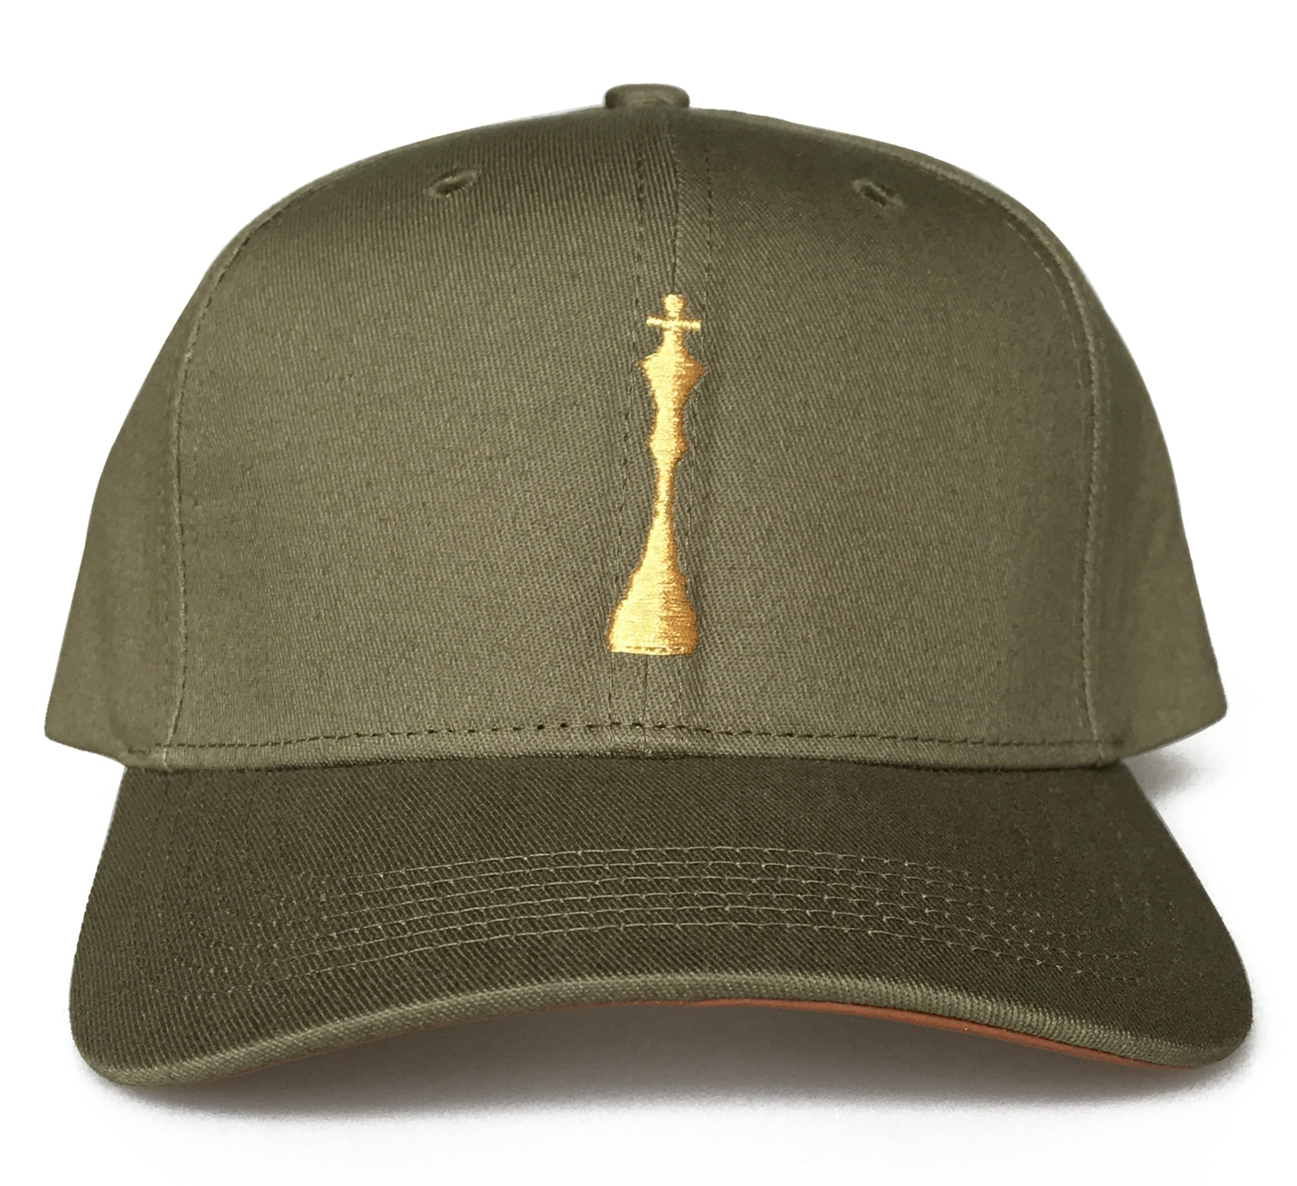 Fashion army green colour 6 panel style baseball cap